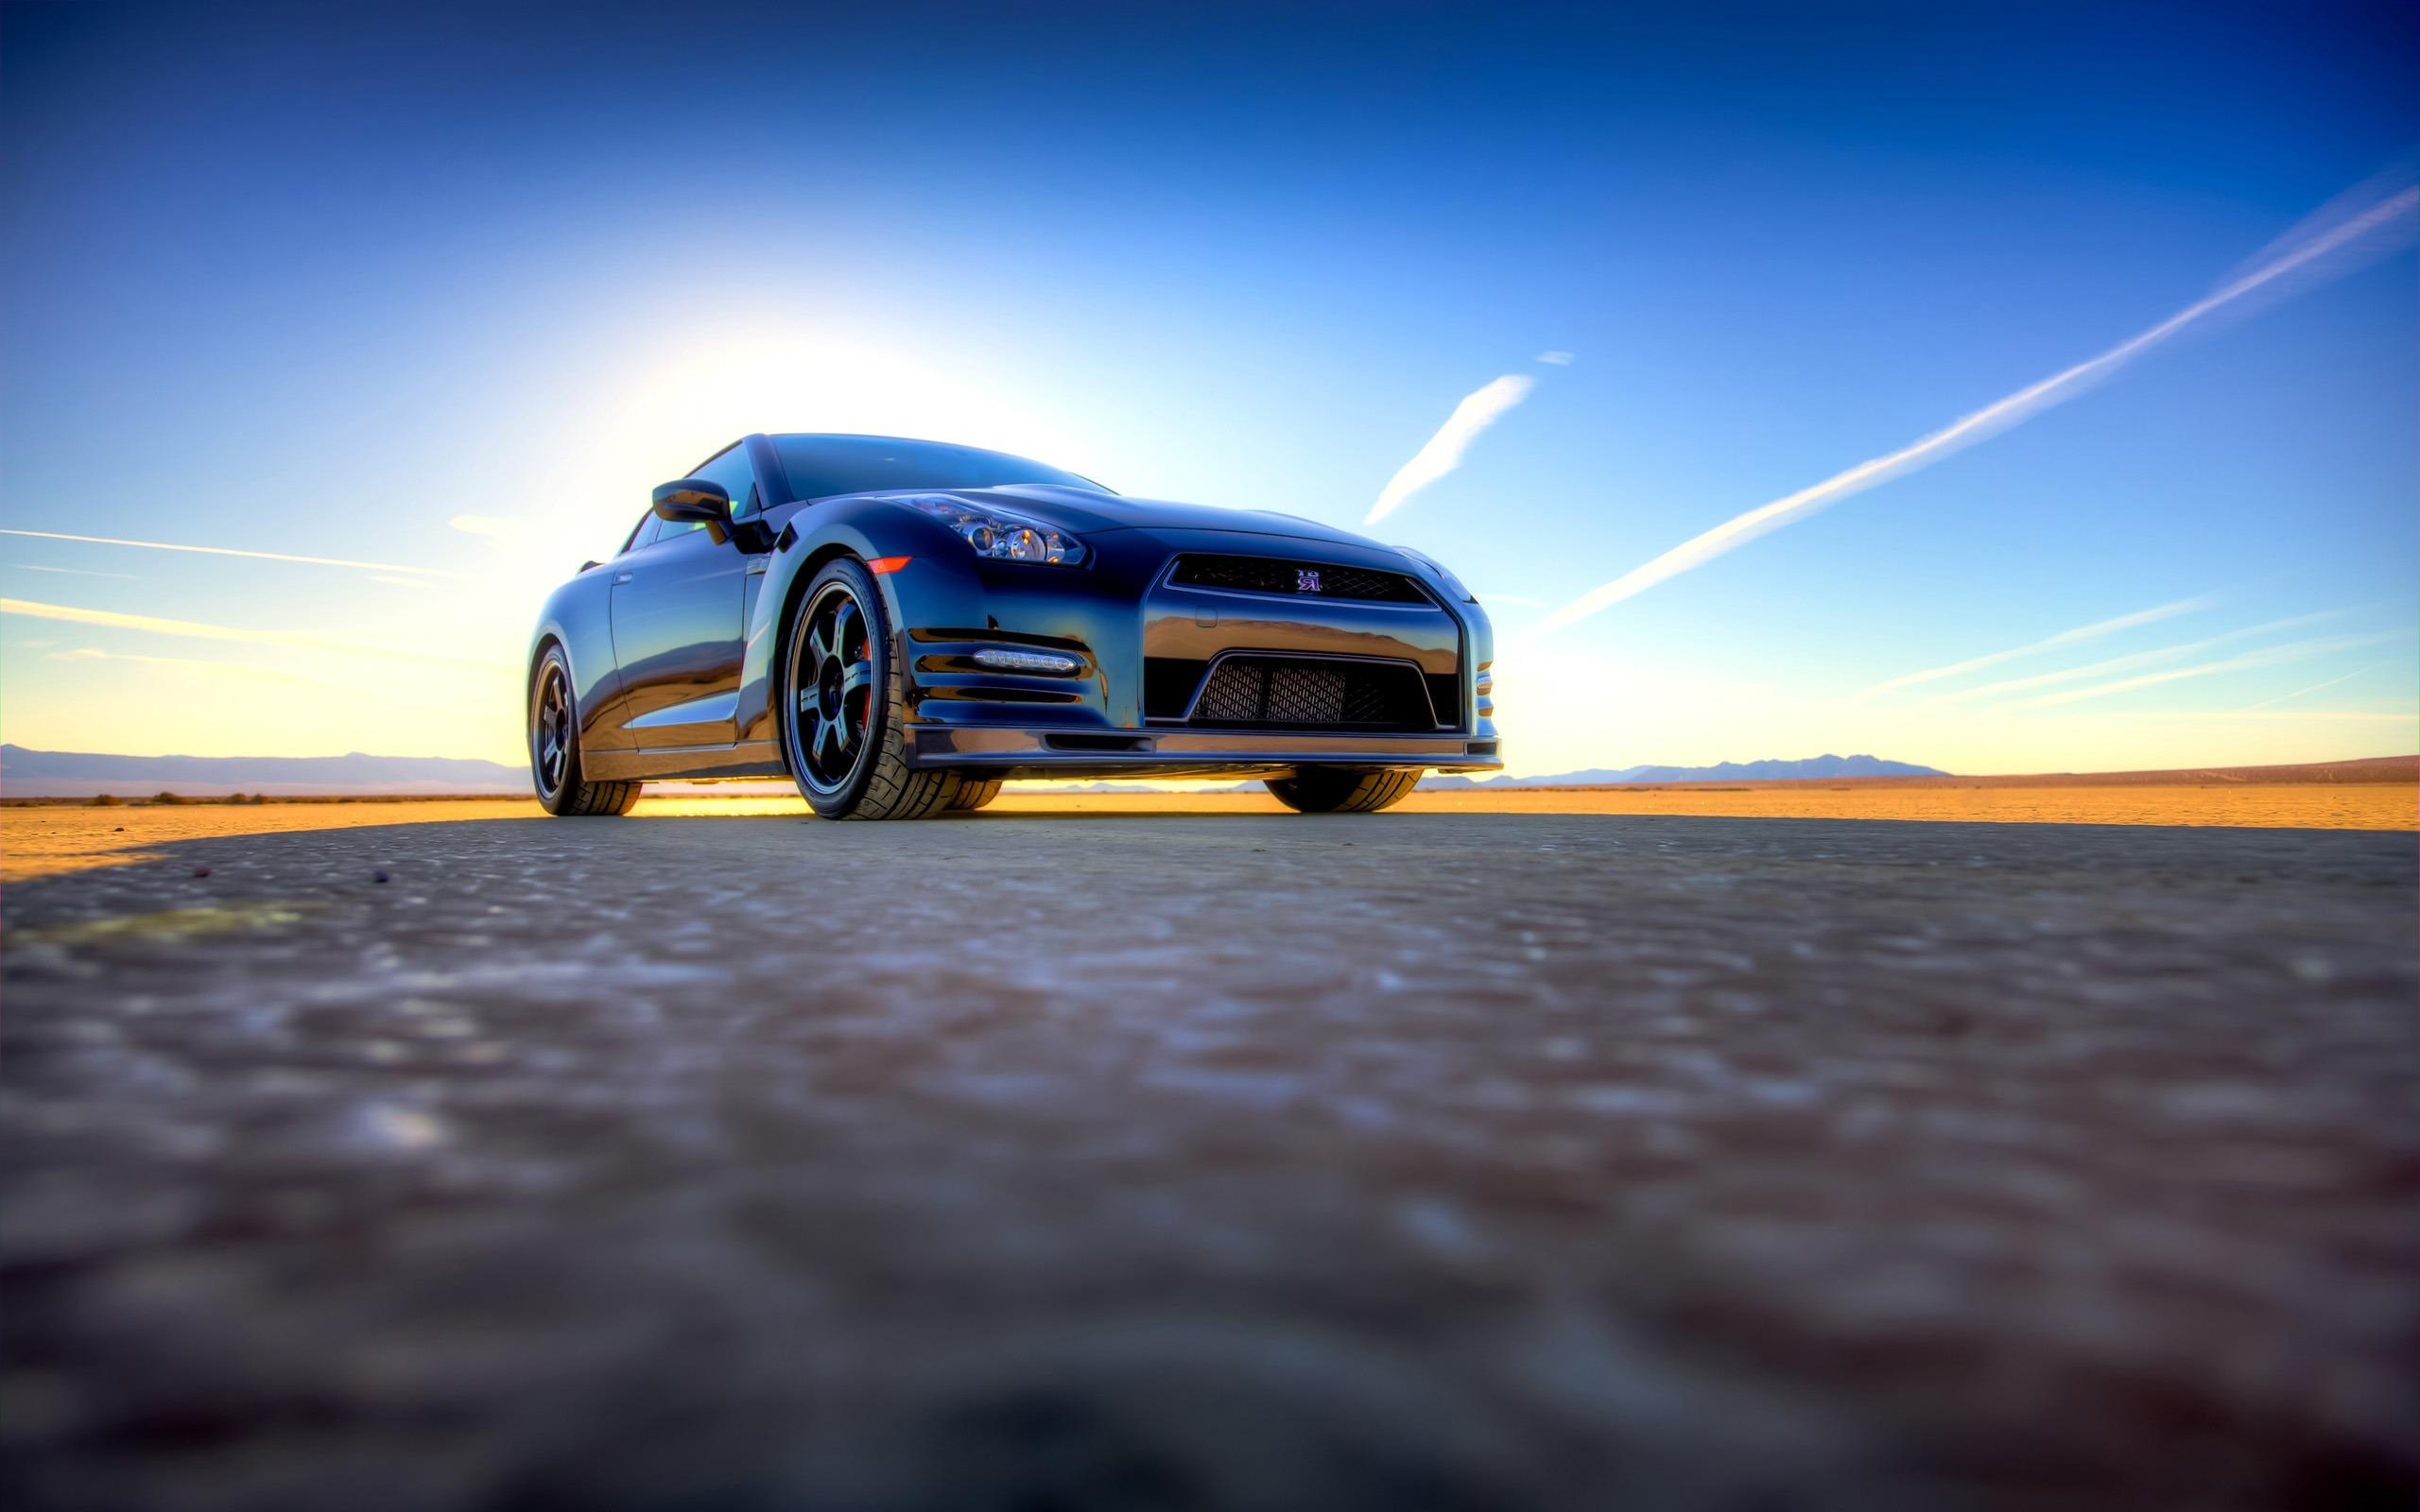 Best Nissan GTR 2014 Wallpaper